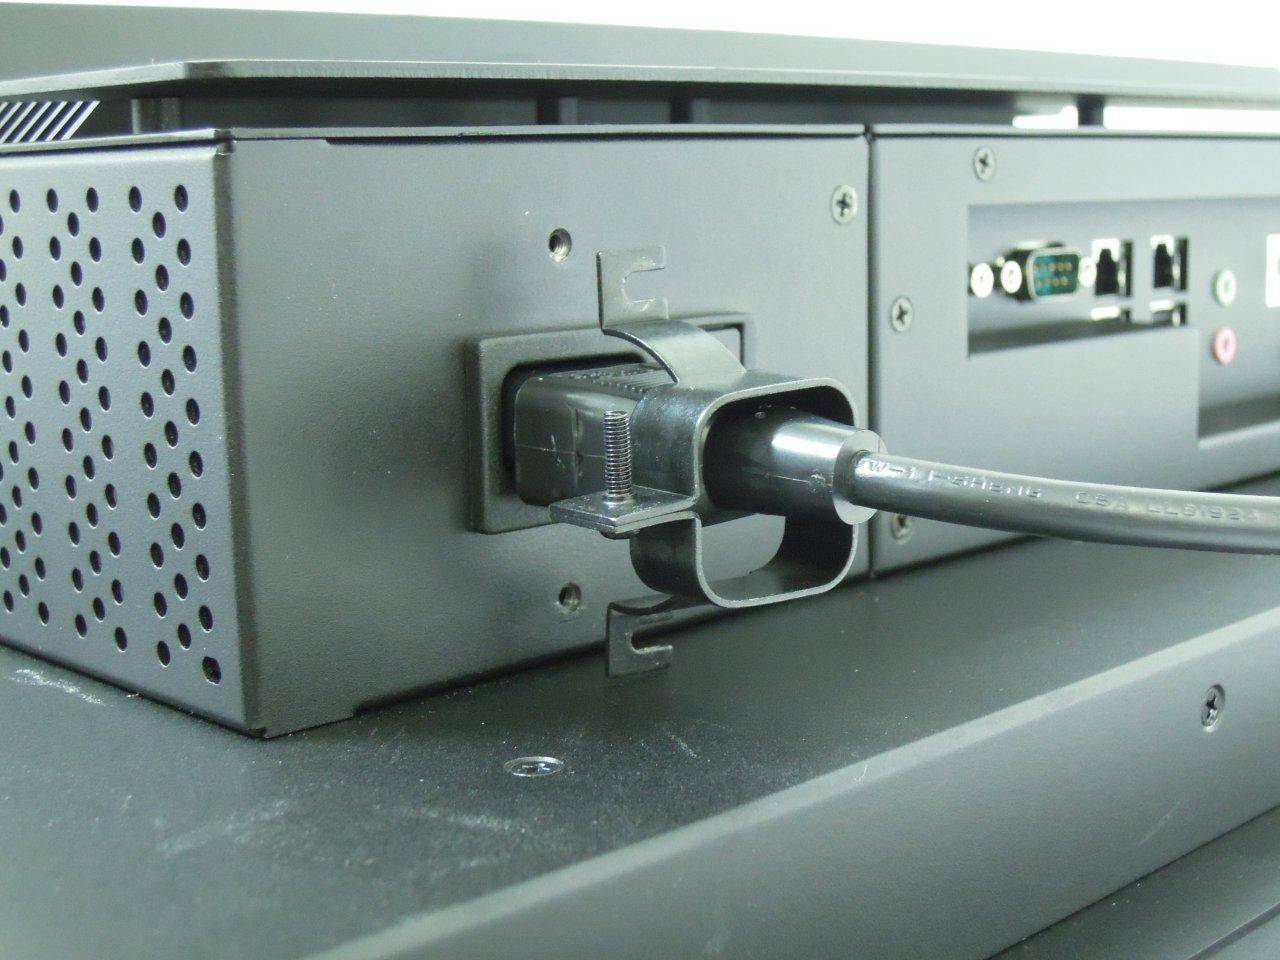 Panel Mount Computer with captive power cable